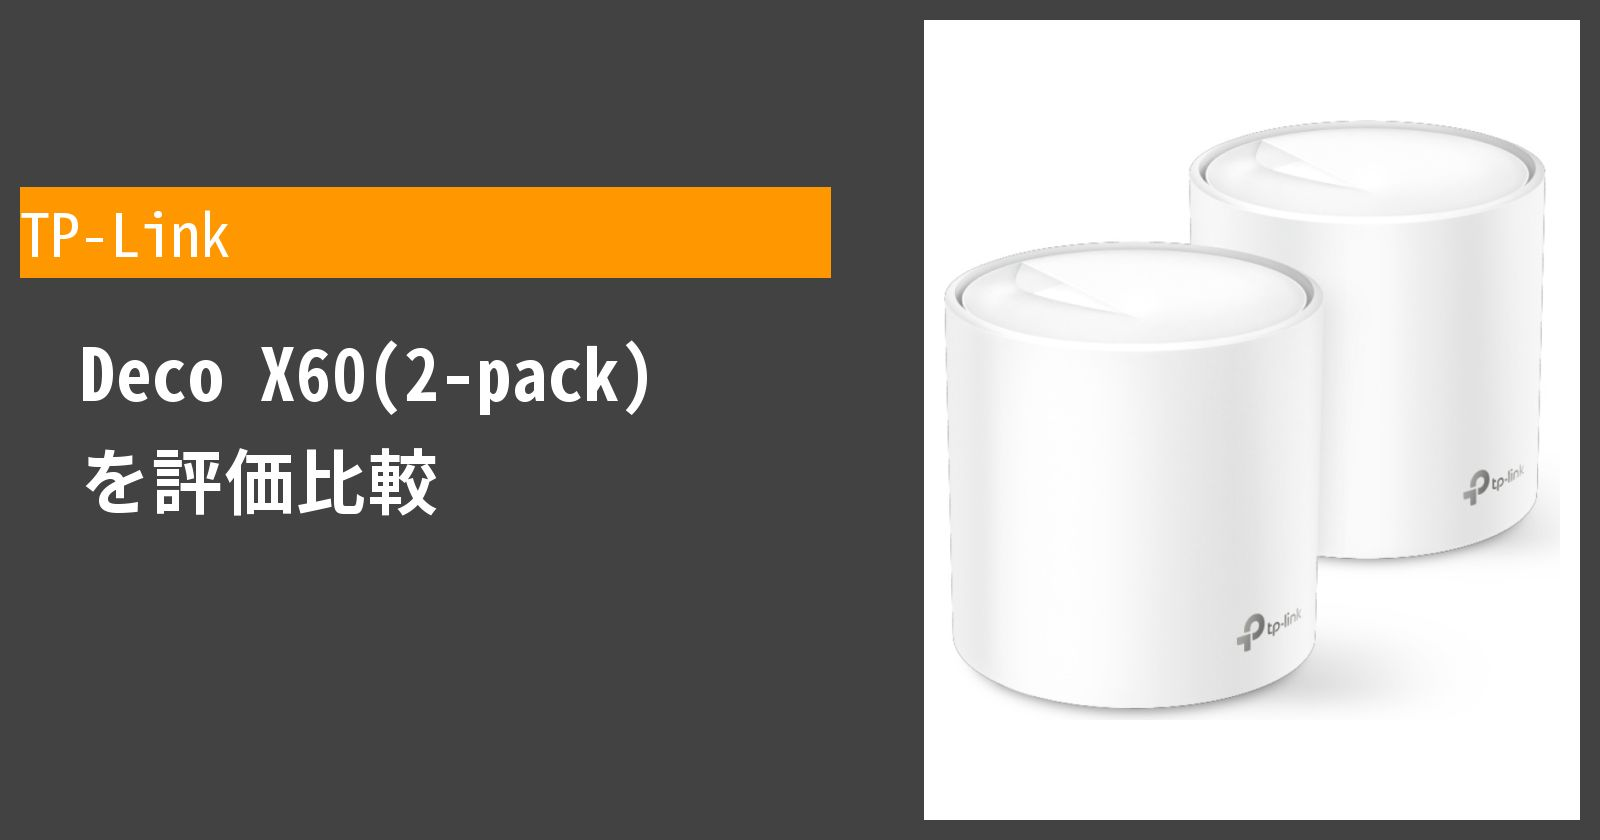 Deco X60(2-pack)を徹底評価